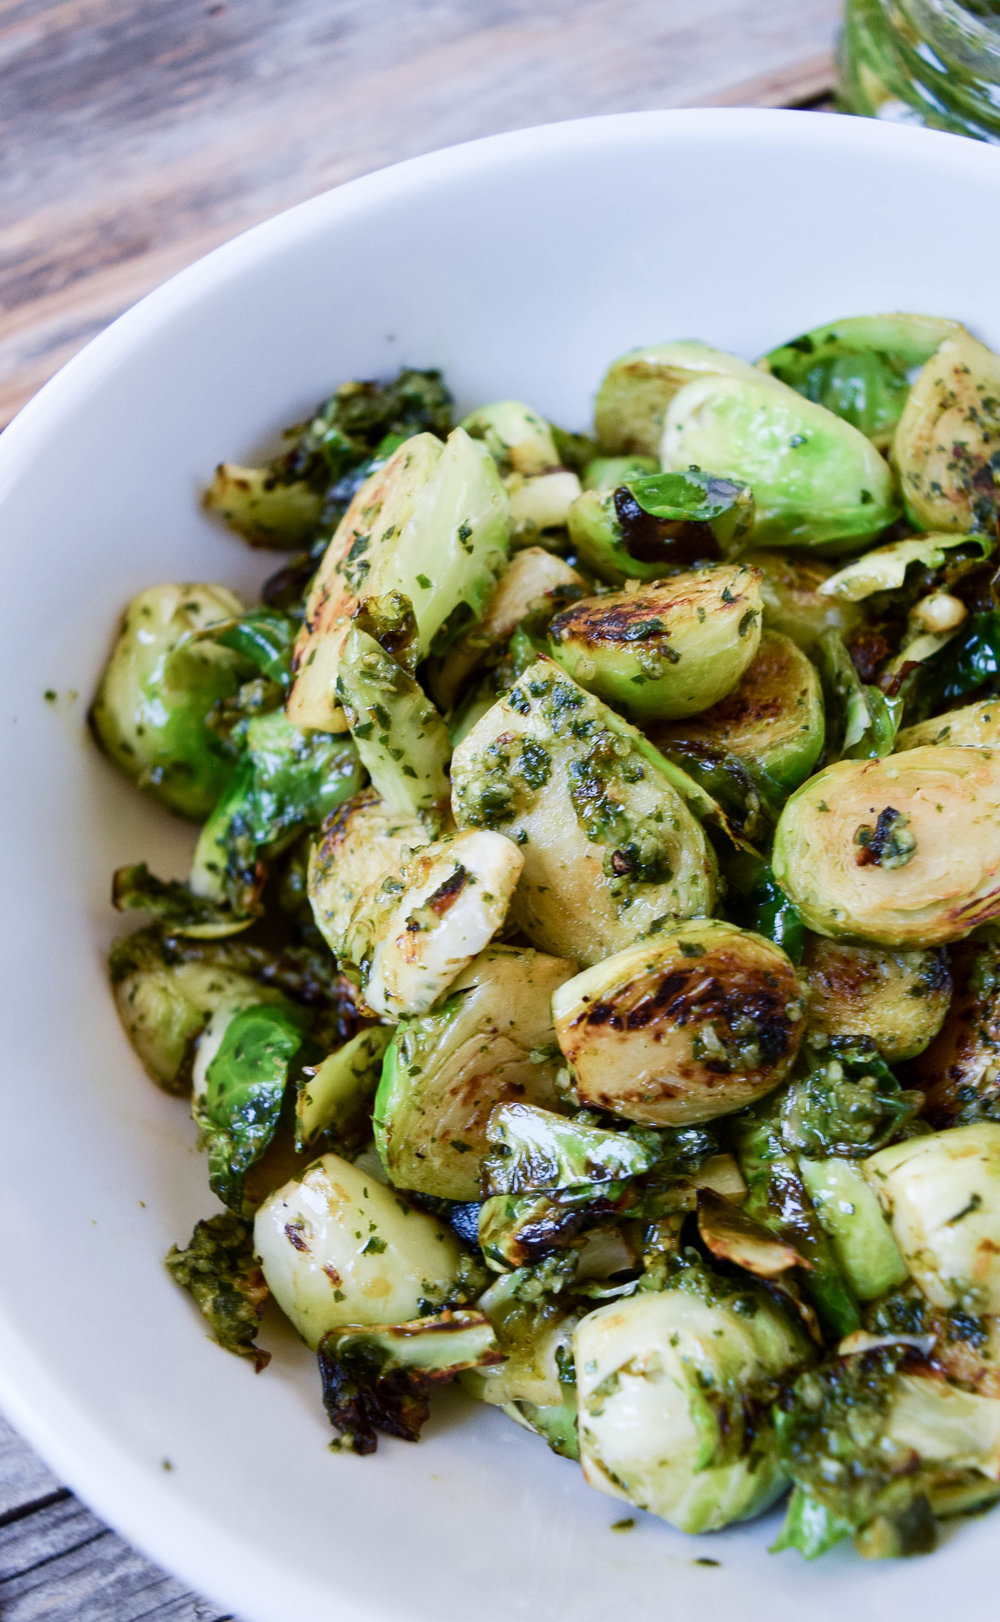 sauteed-brussels-sprouts-homemade-pesto.jpg